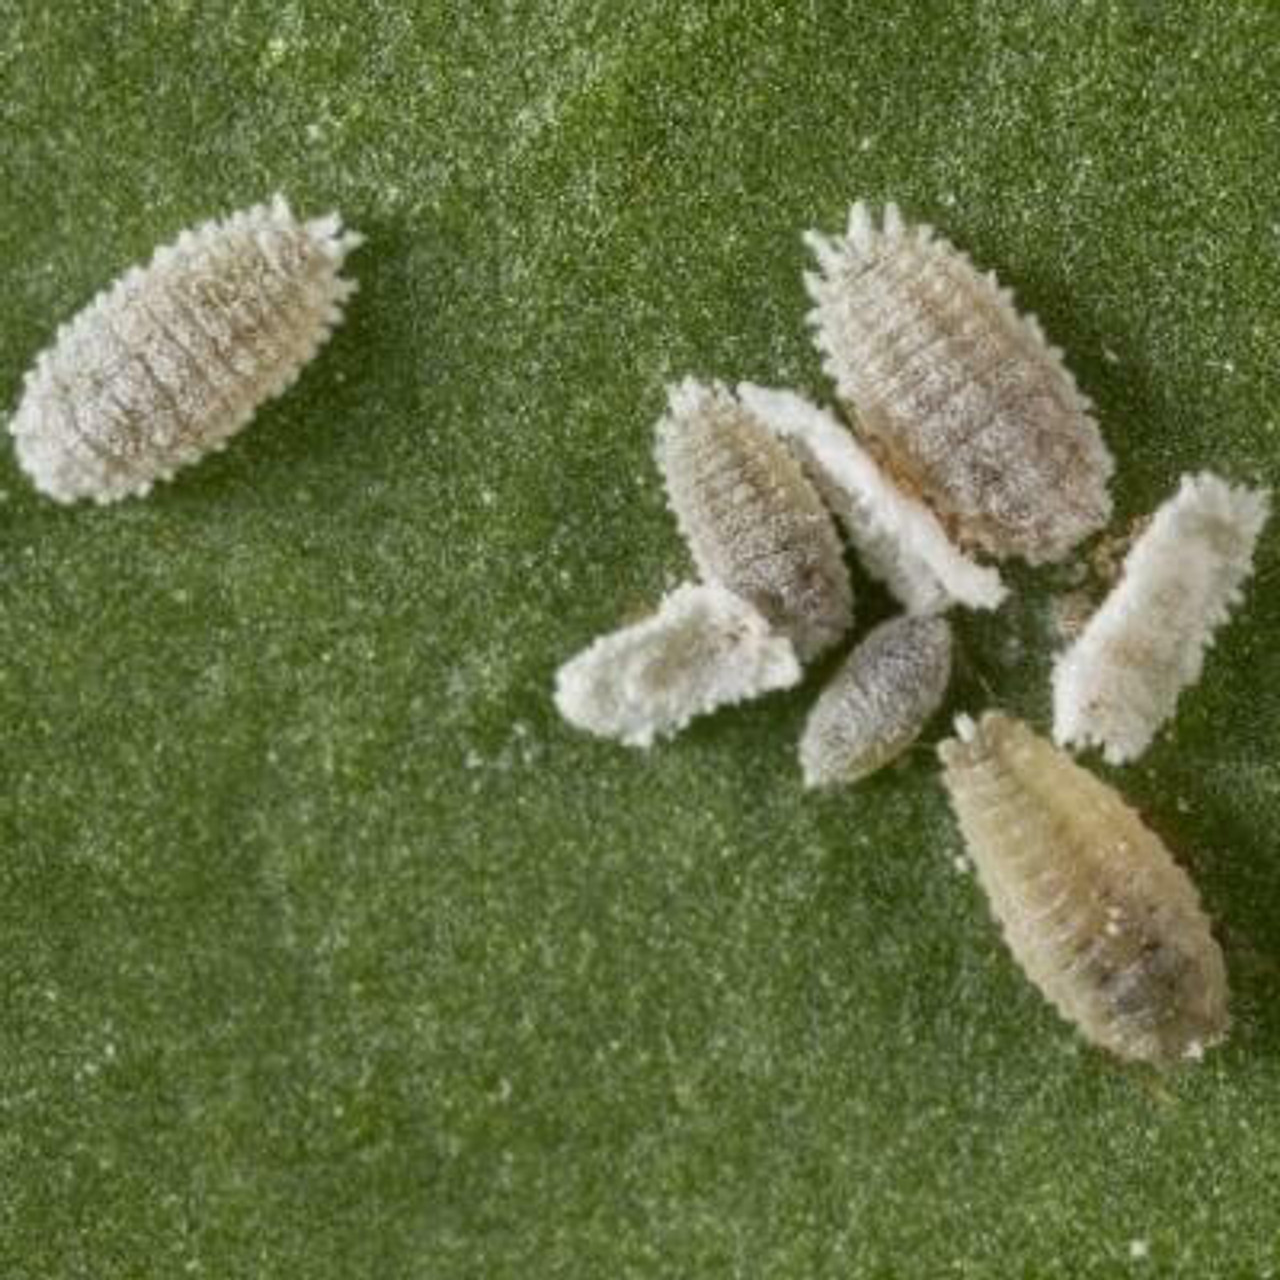 Mealybugs and Scale